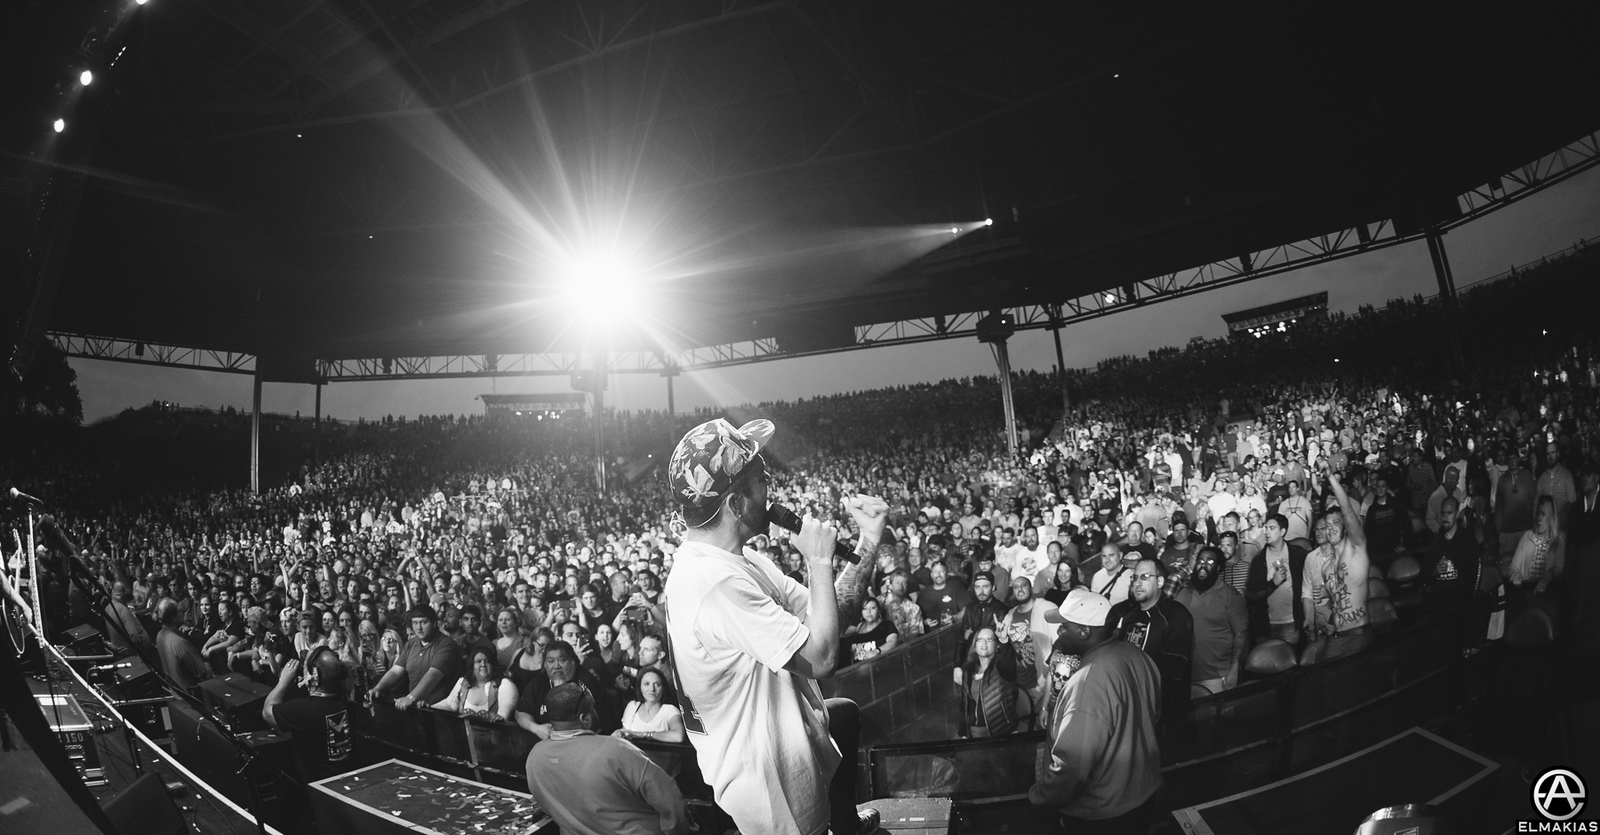 A Day To Remember live at Summerfest in Milwaukee, WI